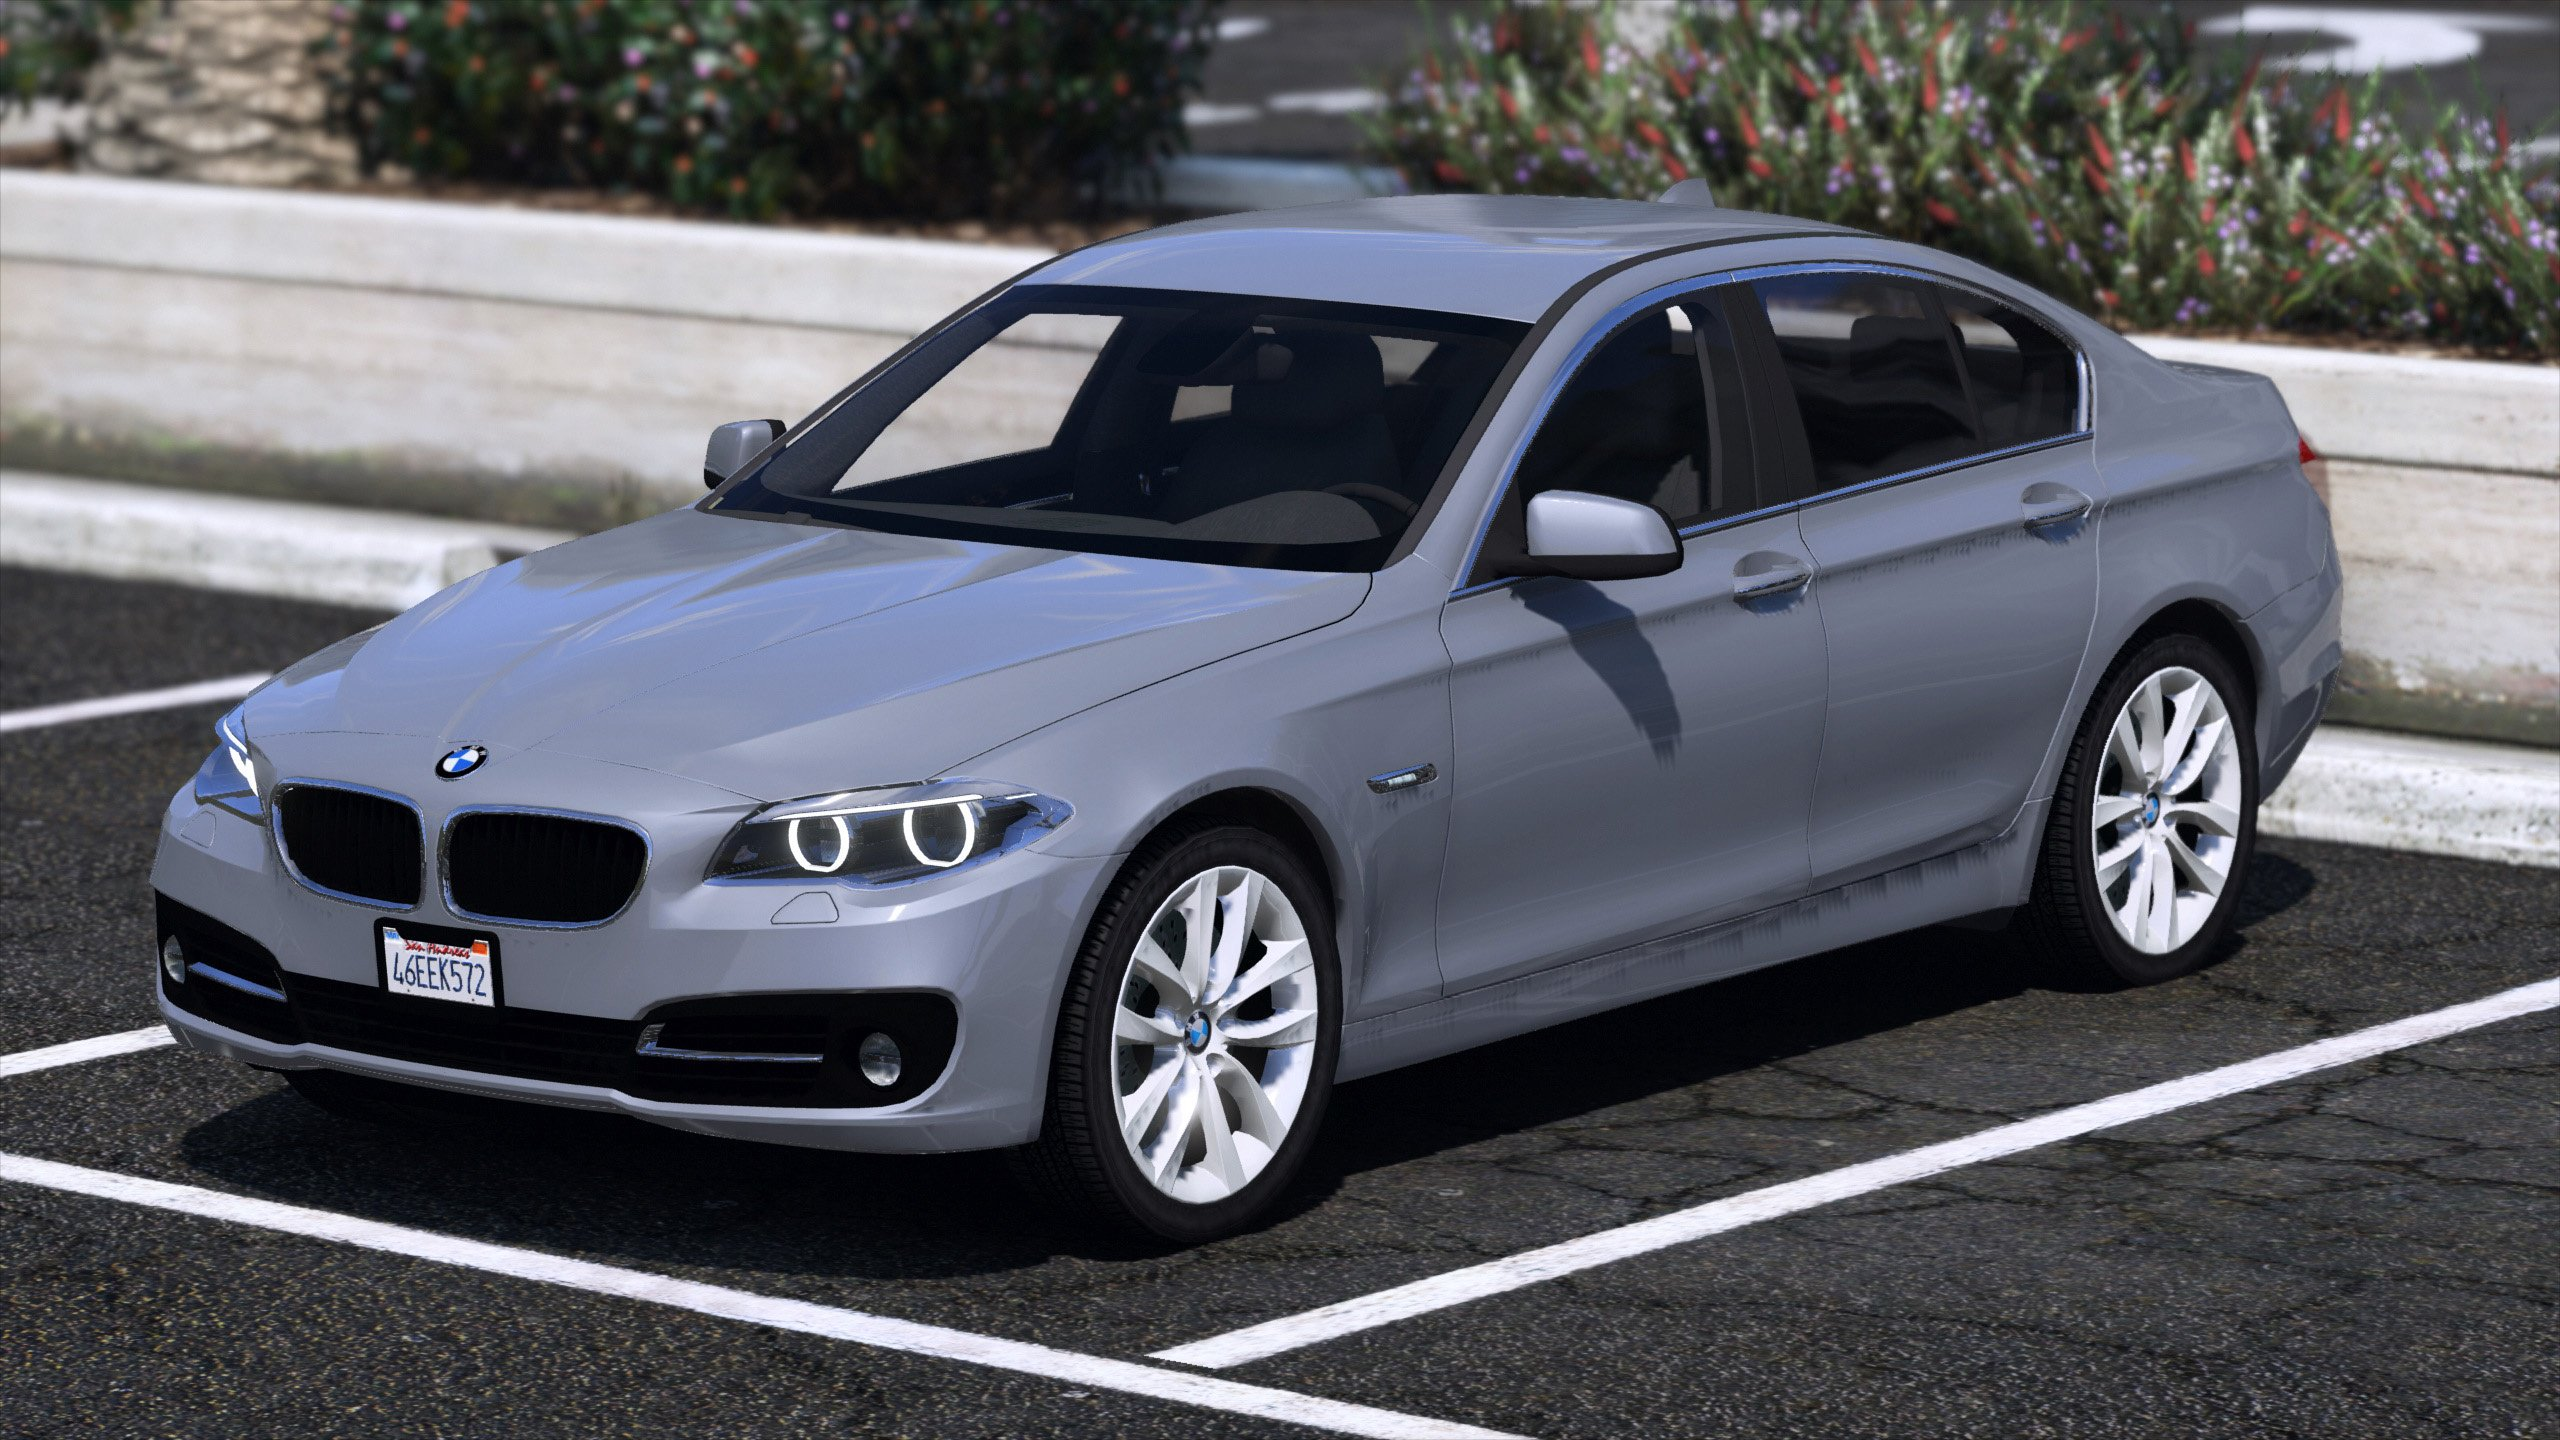 BMW 530D F10 2015 v1.0 for GTA 5